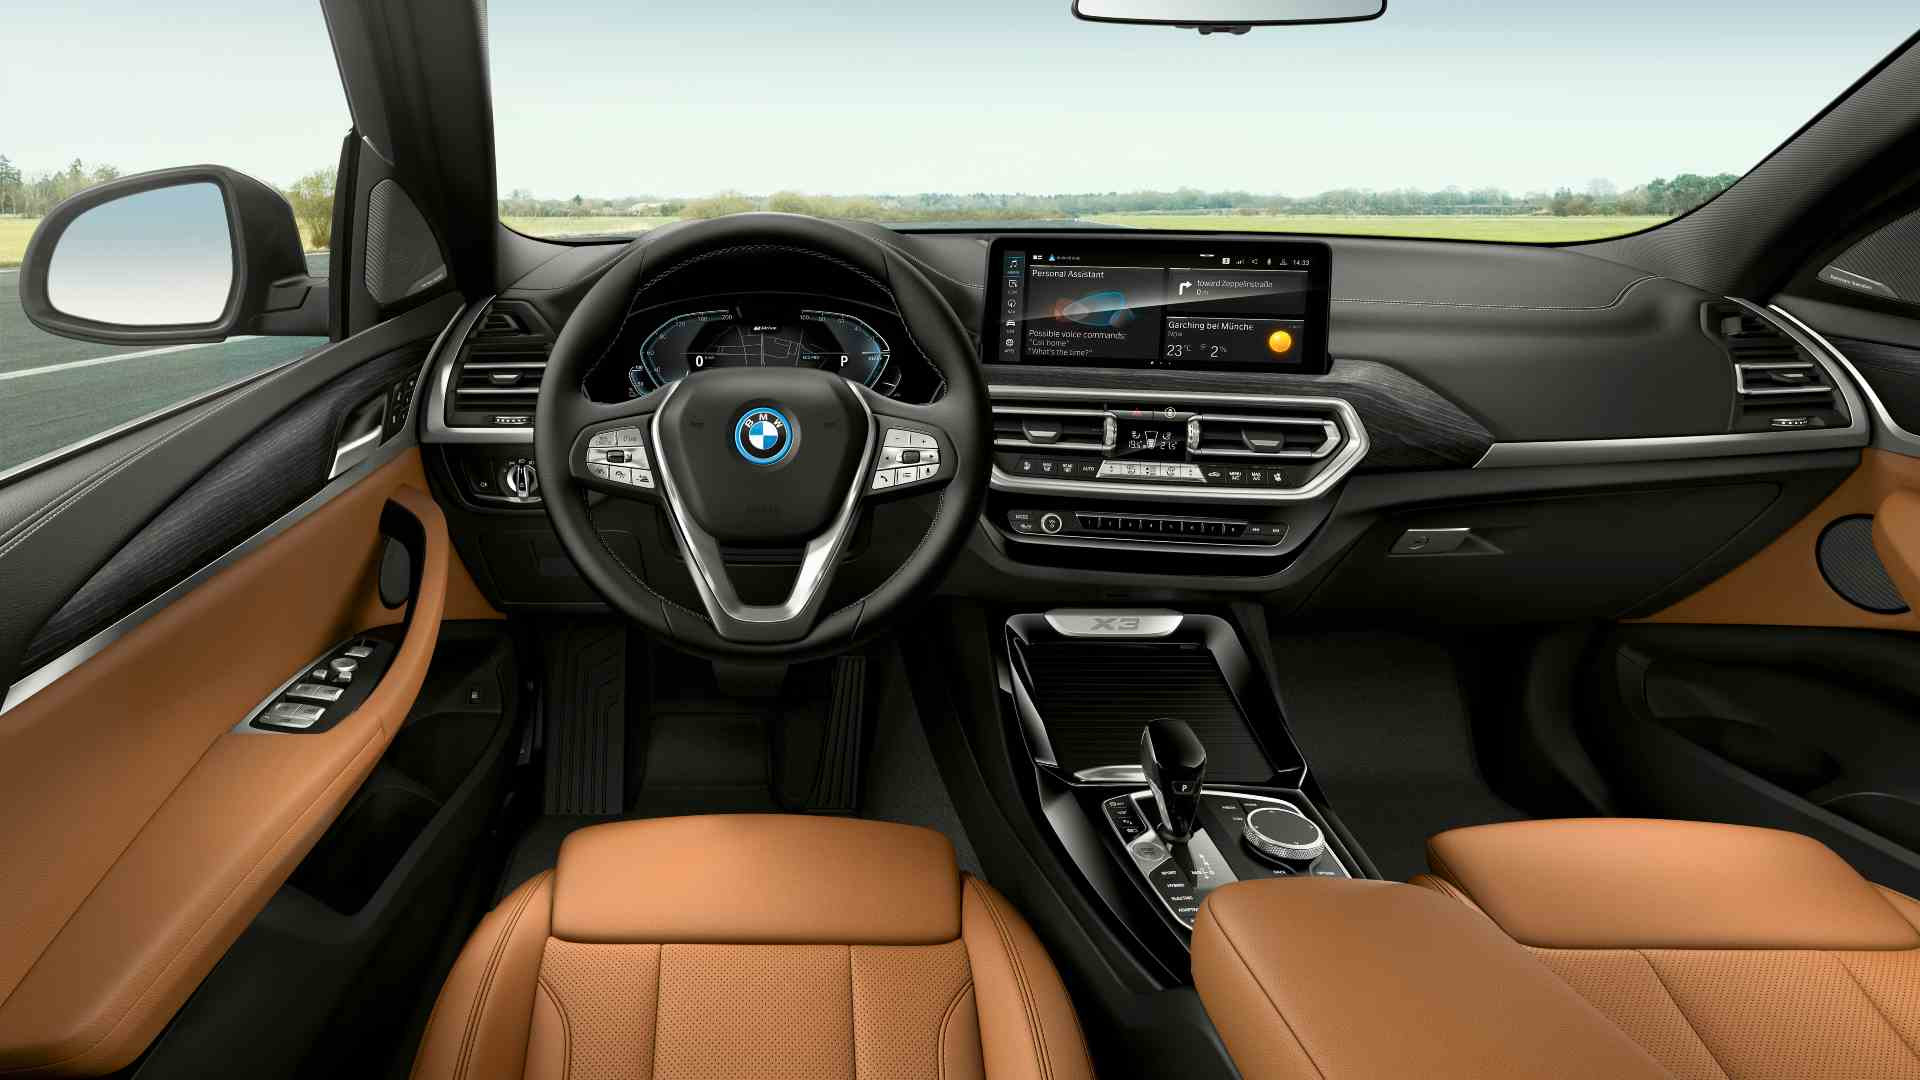 On the inside, the BMW X3 and X4 now get three-zone climate control and a 10.25-inch infotainment screen as standard. Image: BMW